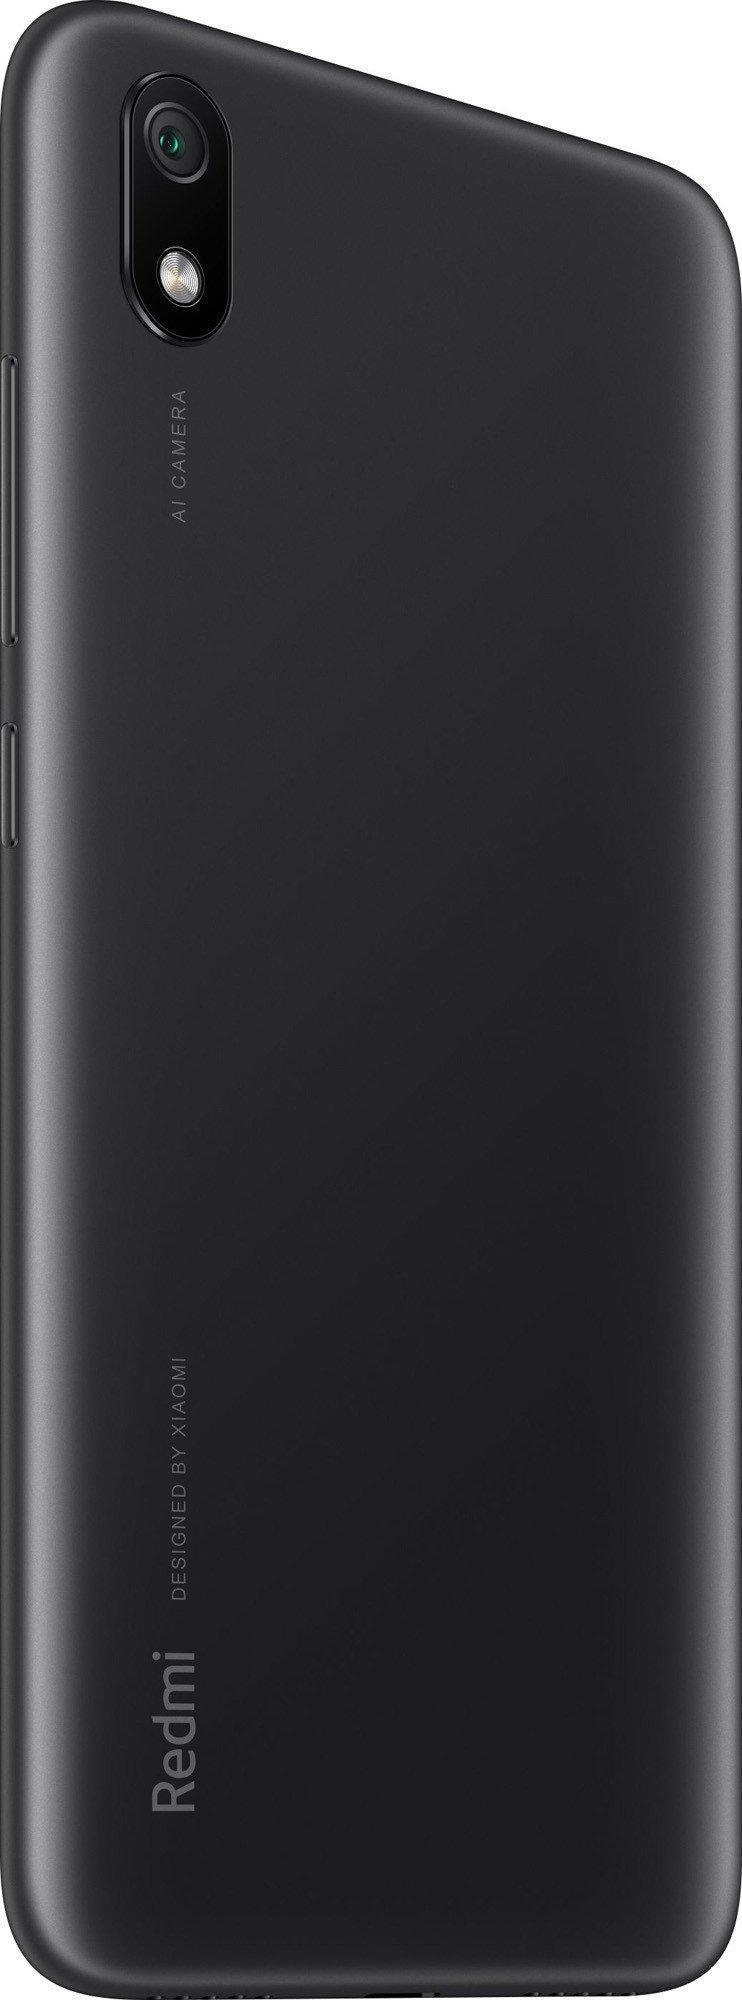 Смартфон Xiaomi Redmi 7A 2/32Gb Black: Фото 6